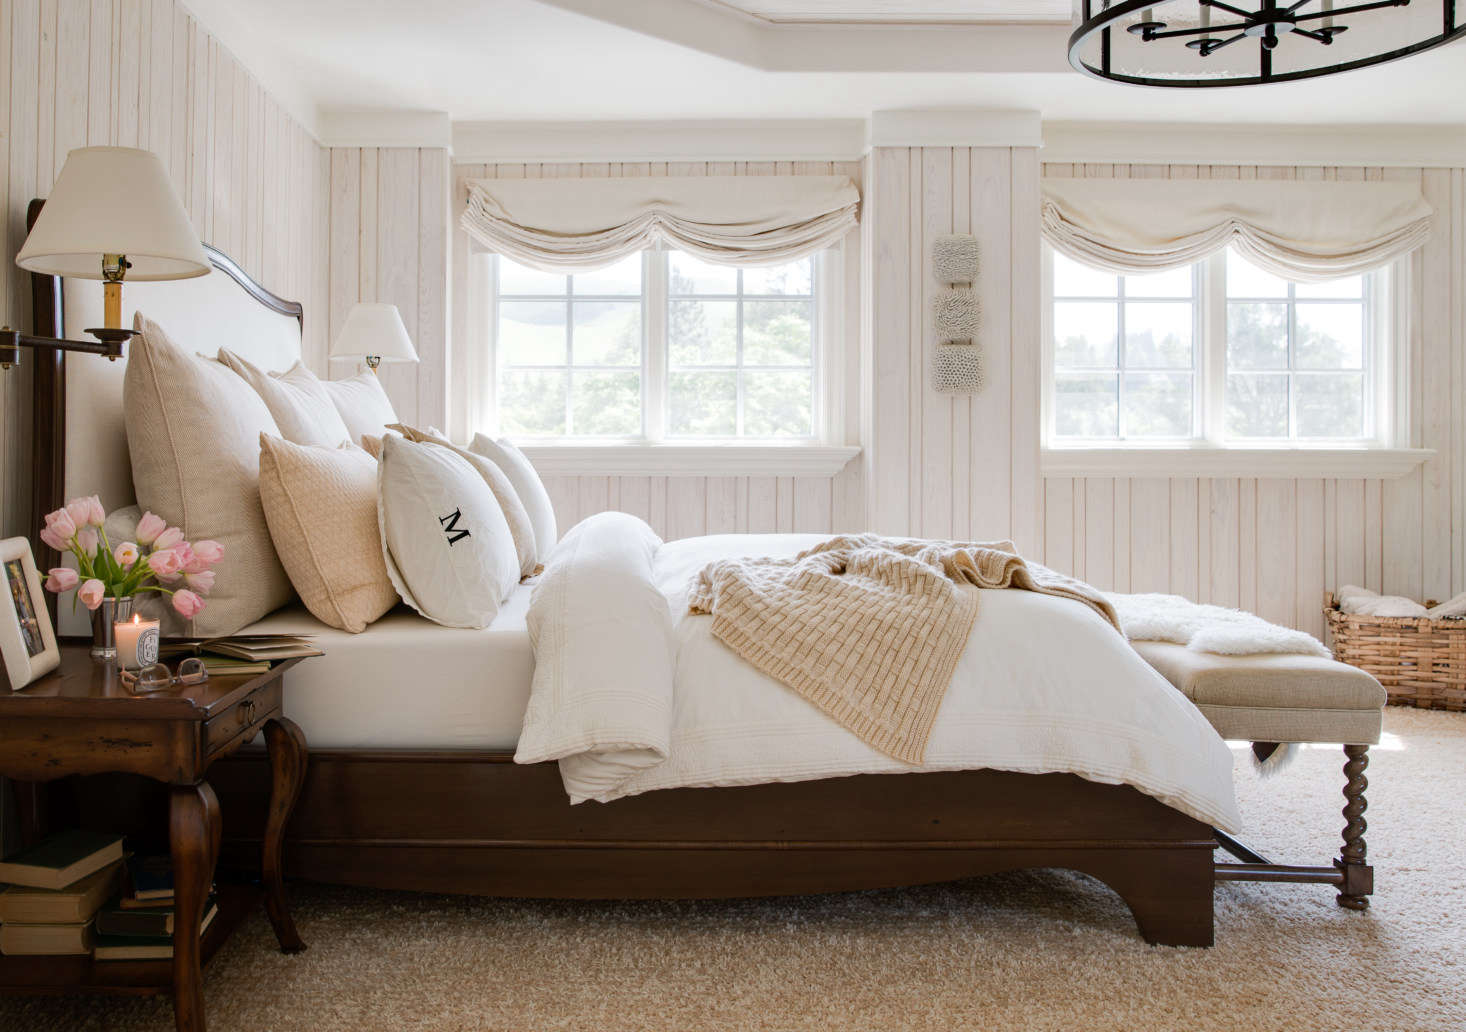 A sophisticated guest bedroom in shades of whites and neutrals that is cozy and timeless. Photography by Thomas Kuoh